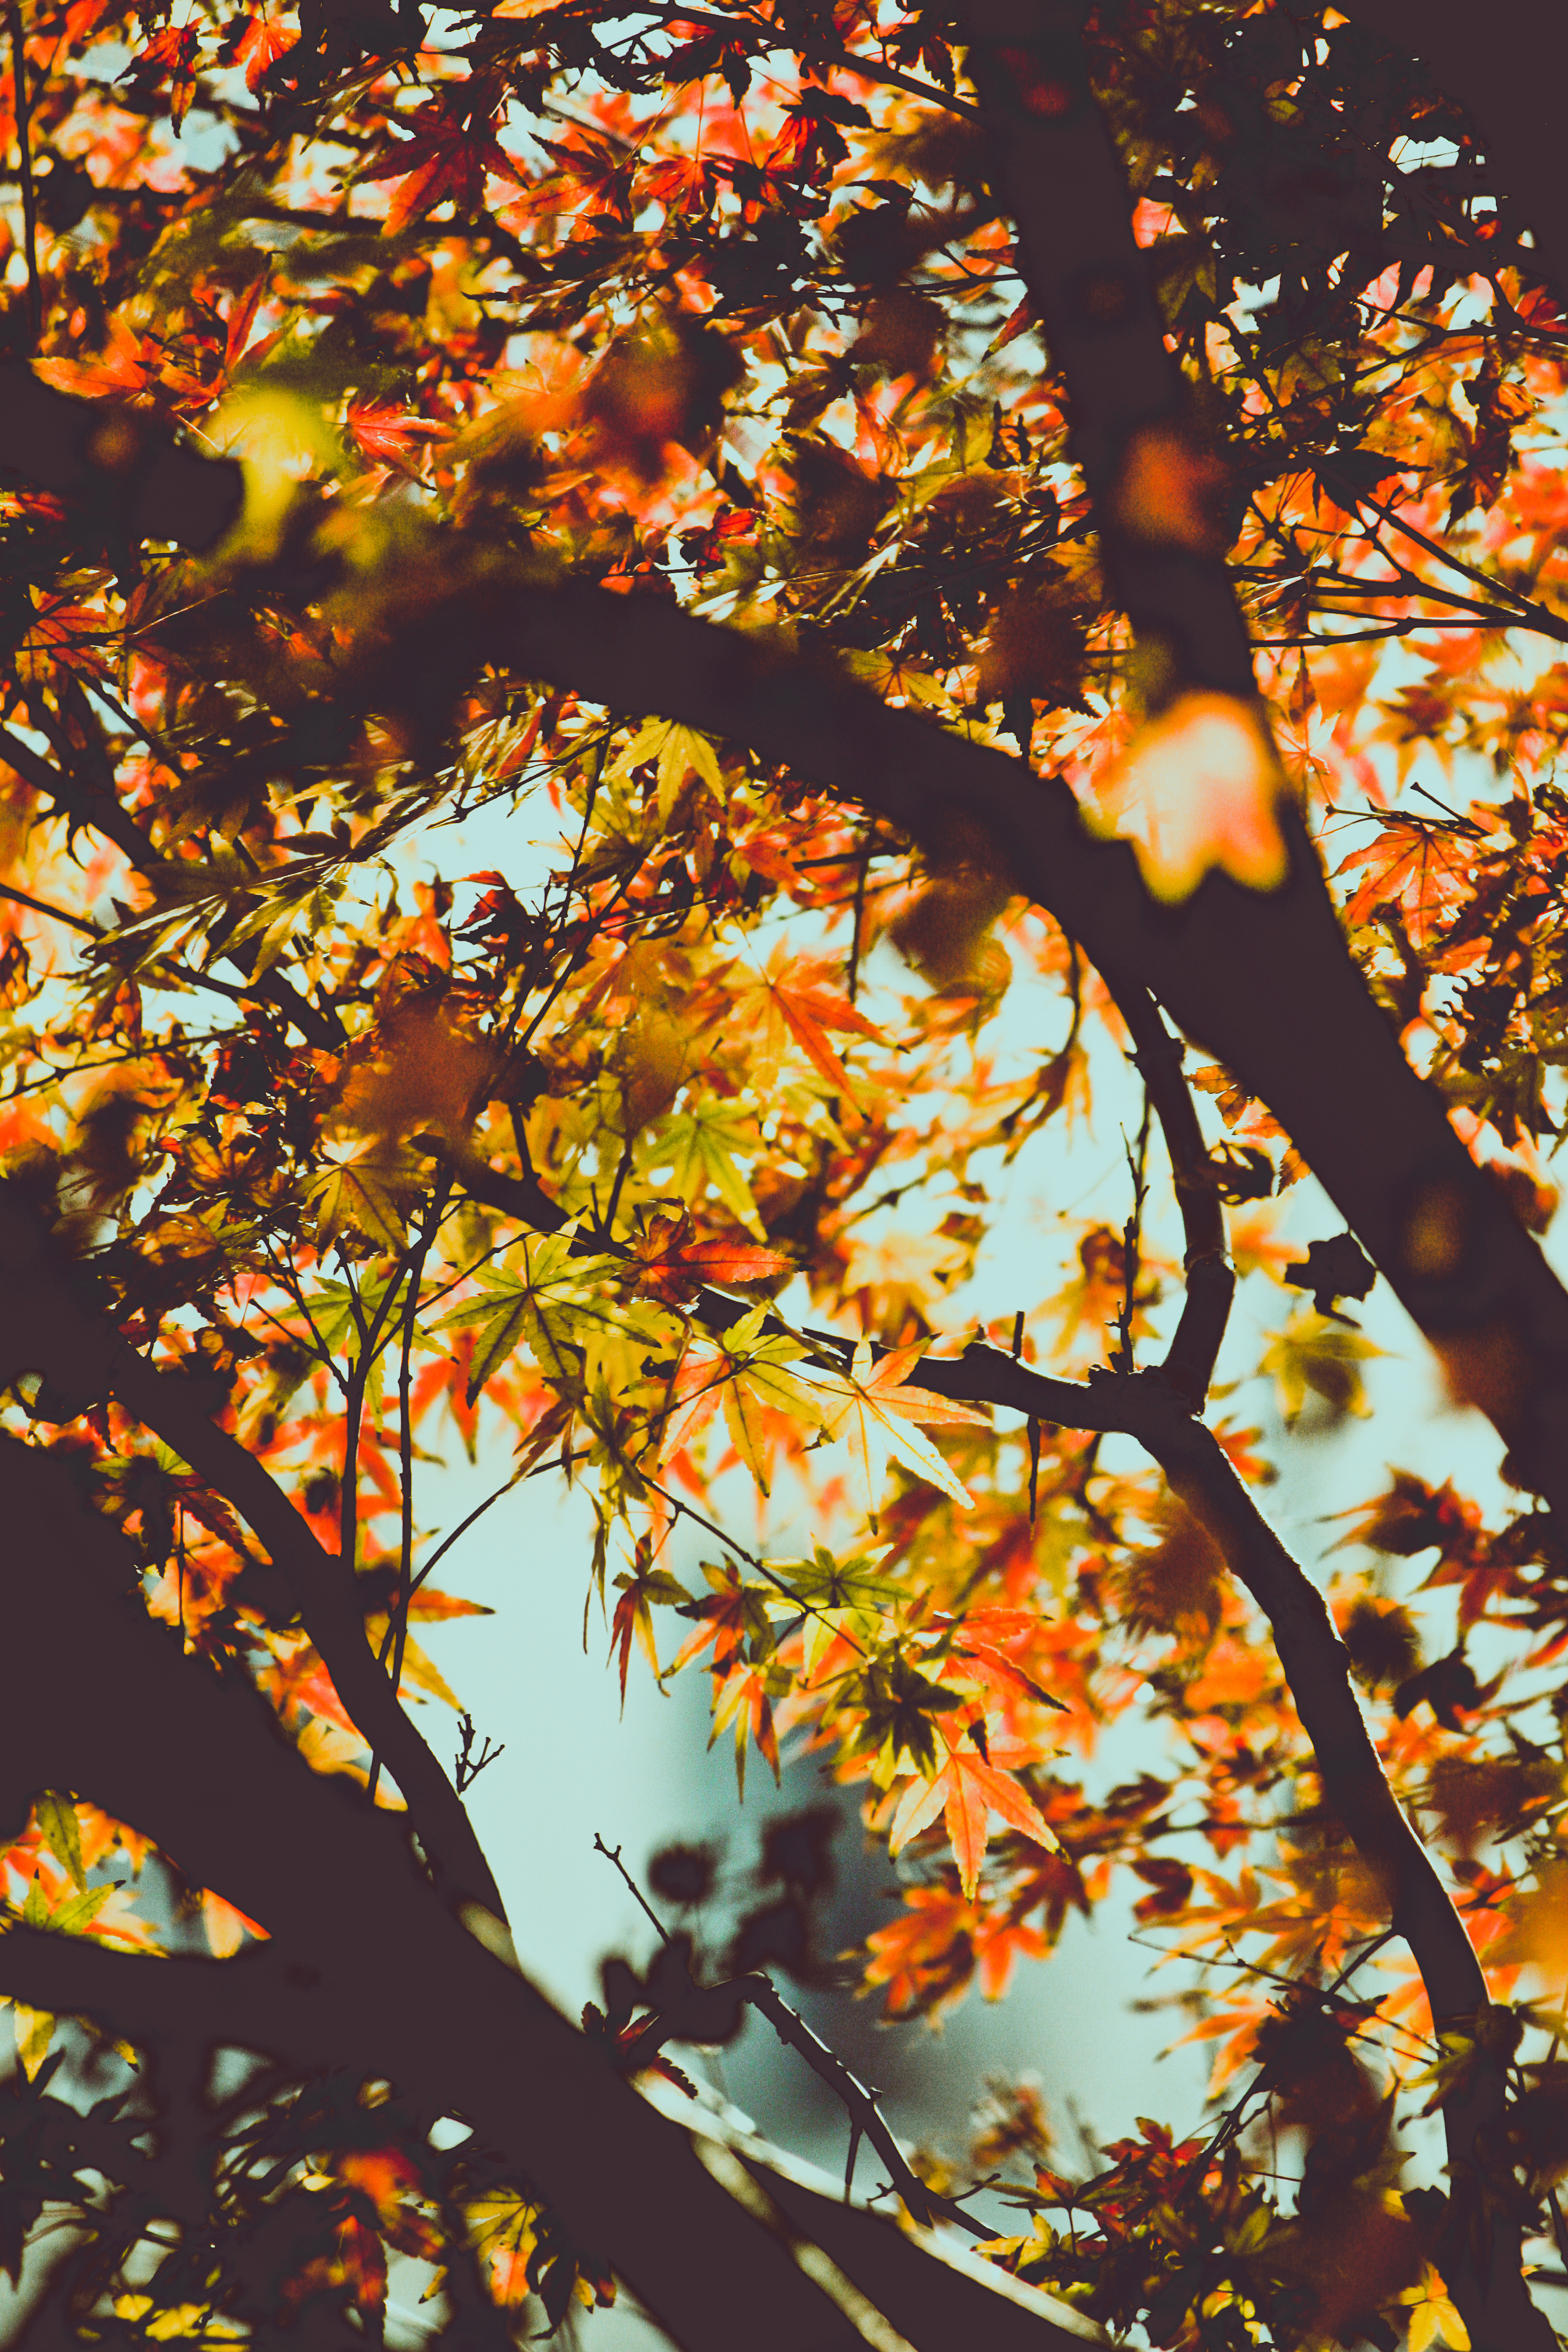 free stock photo of autumn fall leaves